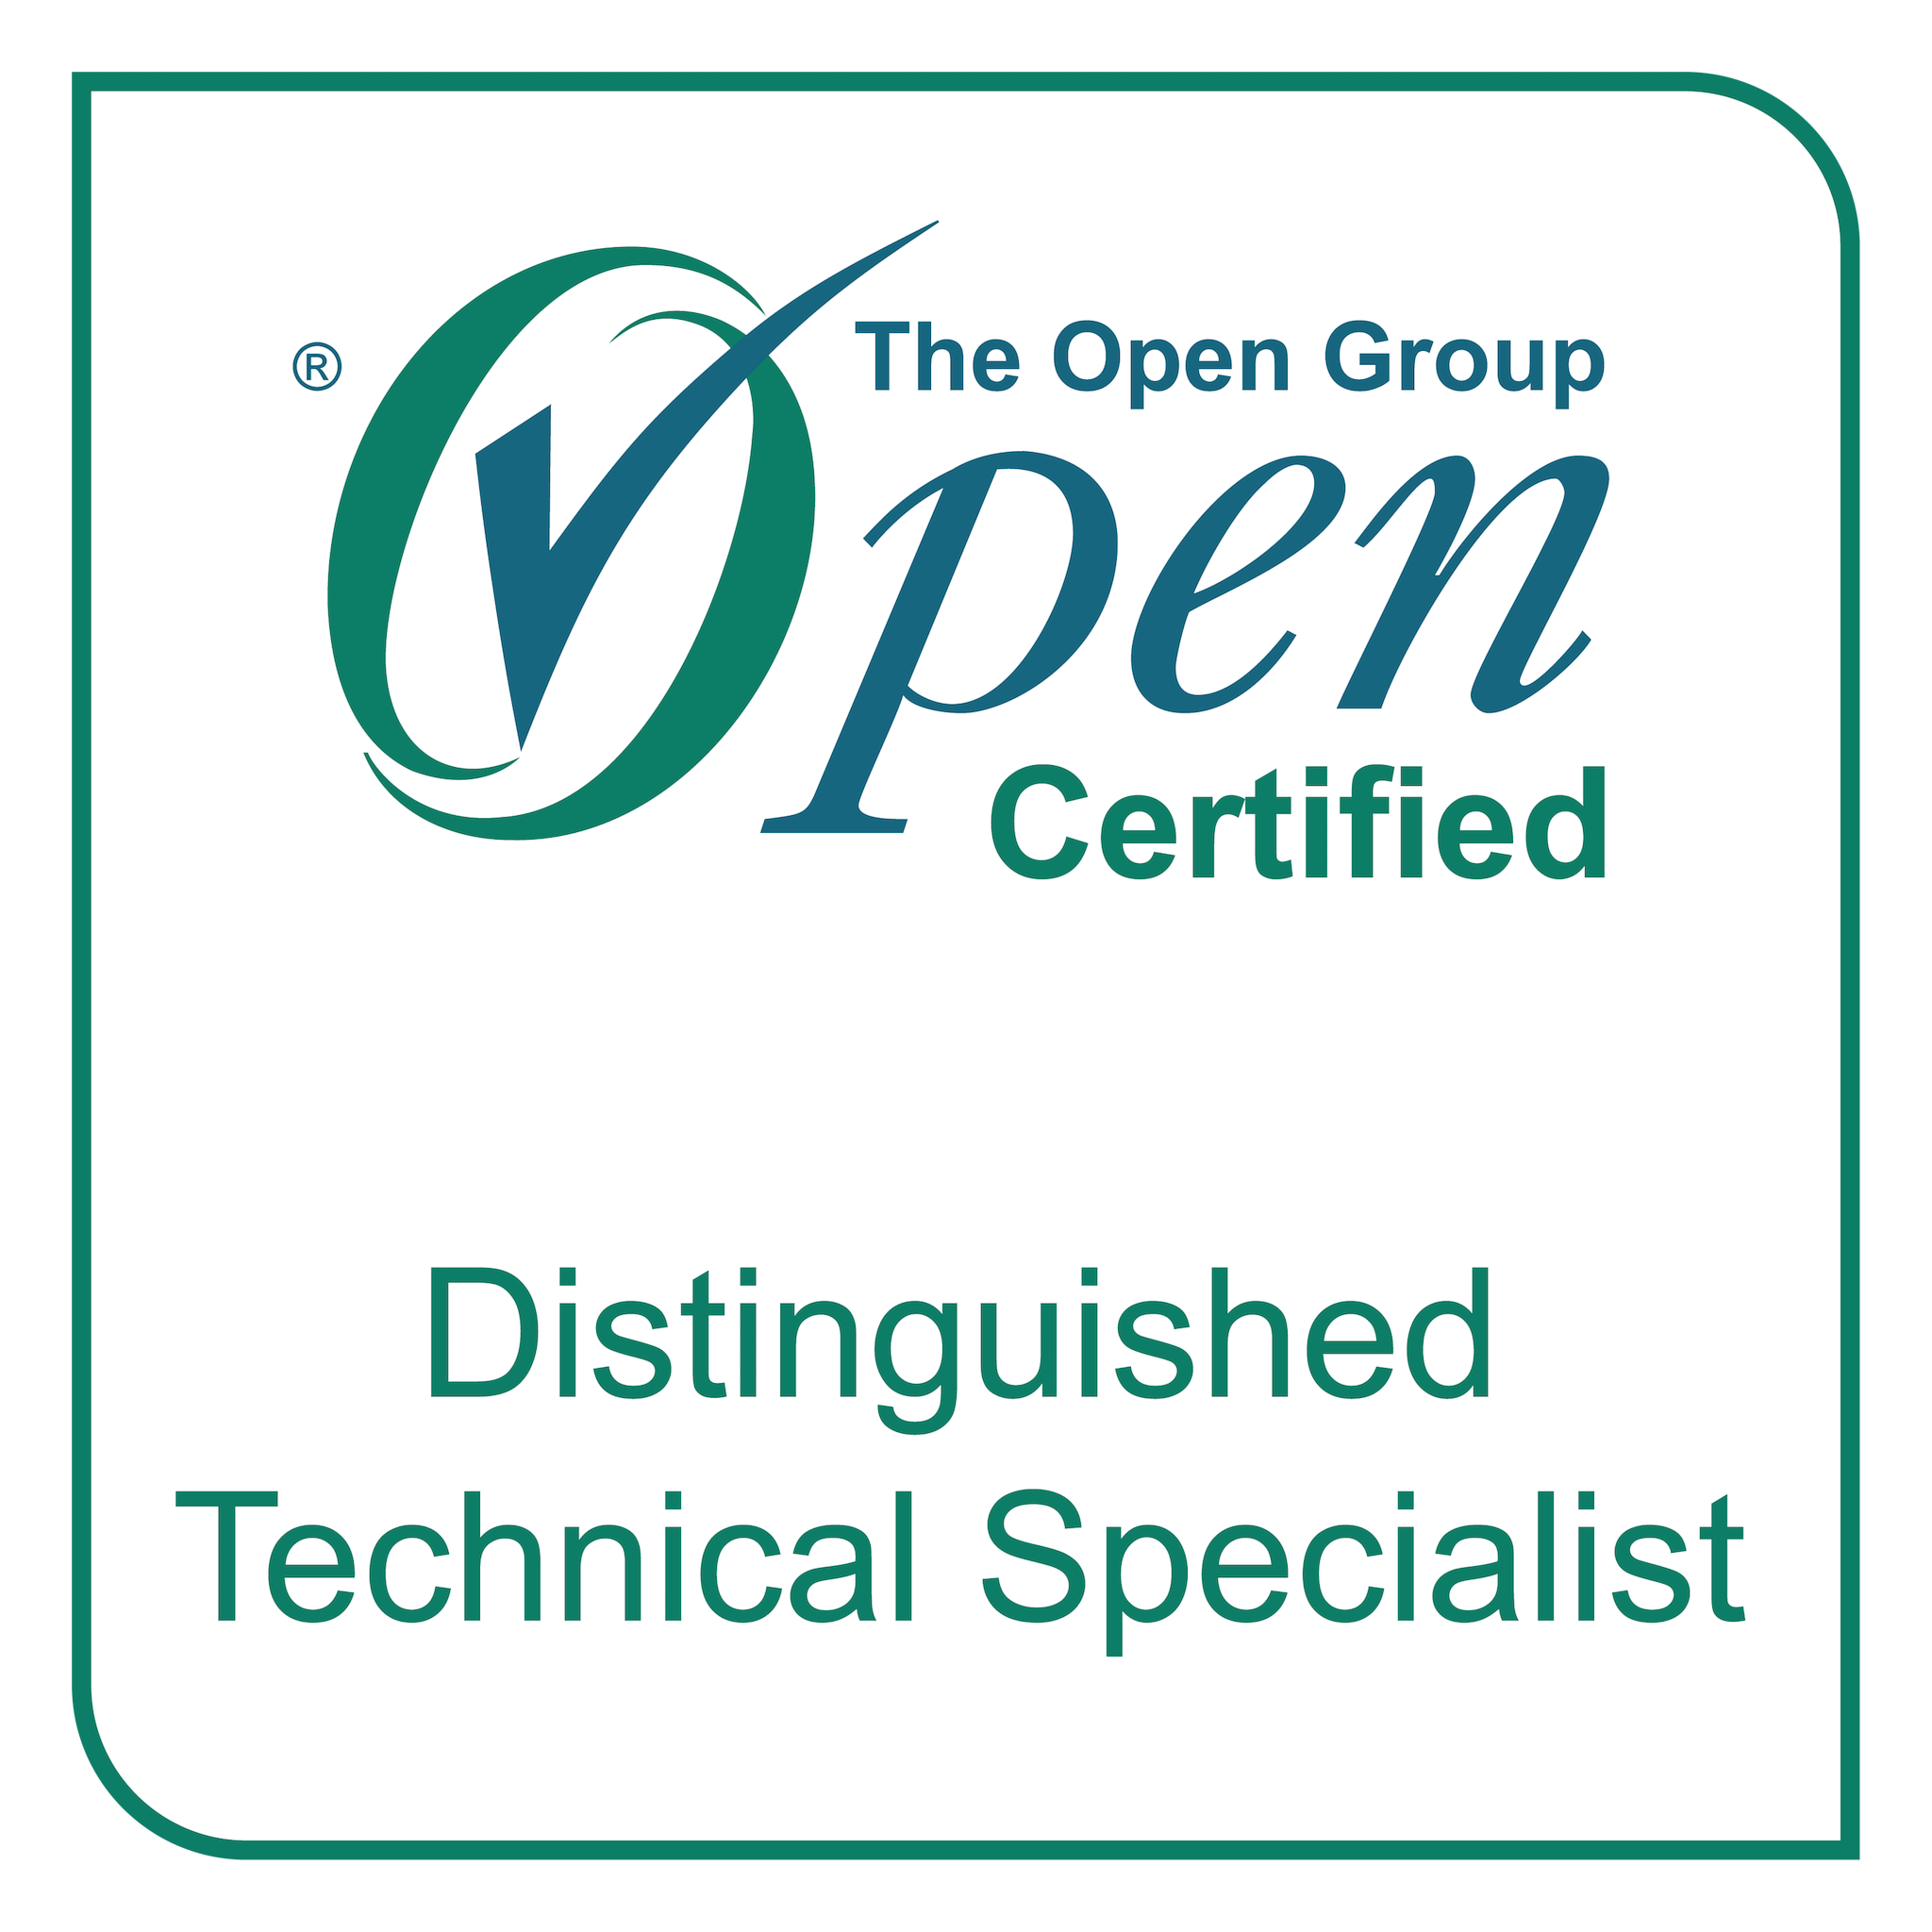 Professional Certification: Level 3 - Distinguished Technical Specialist